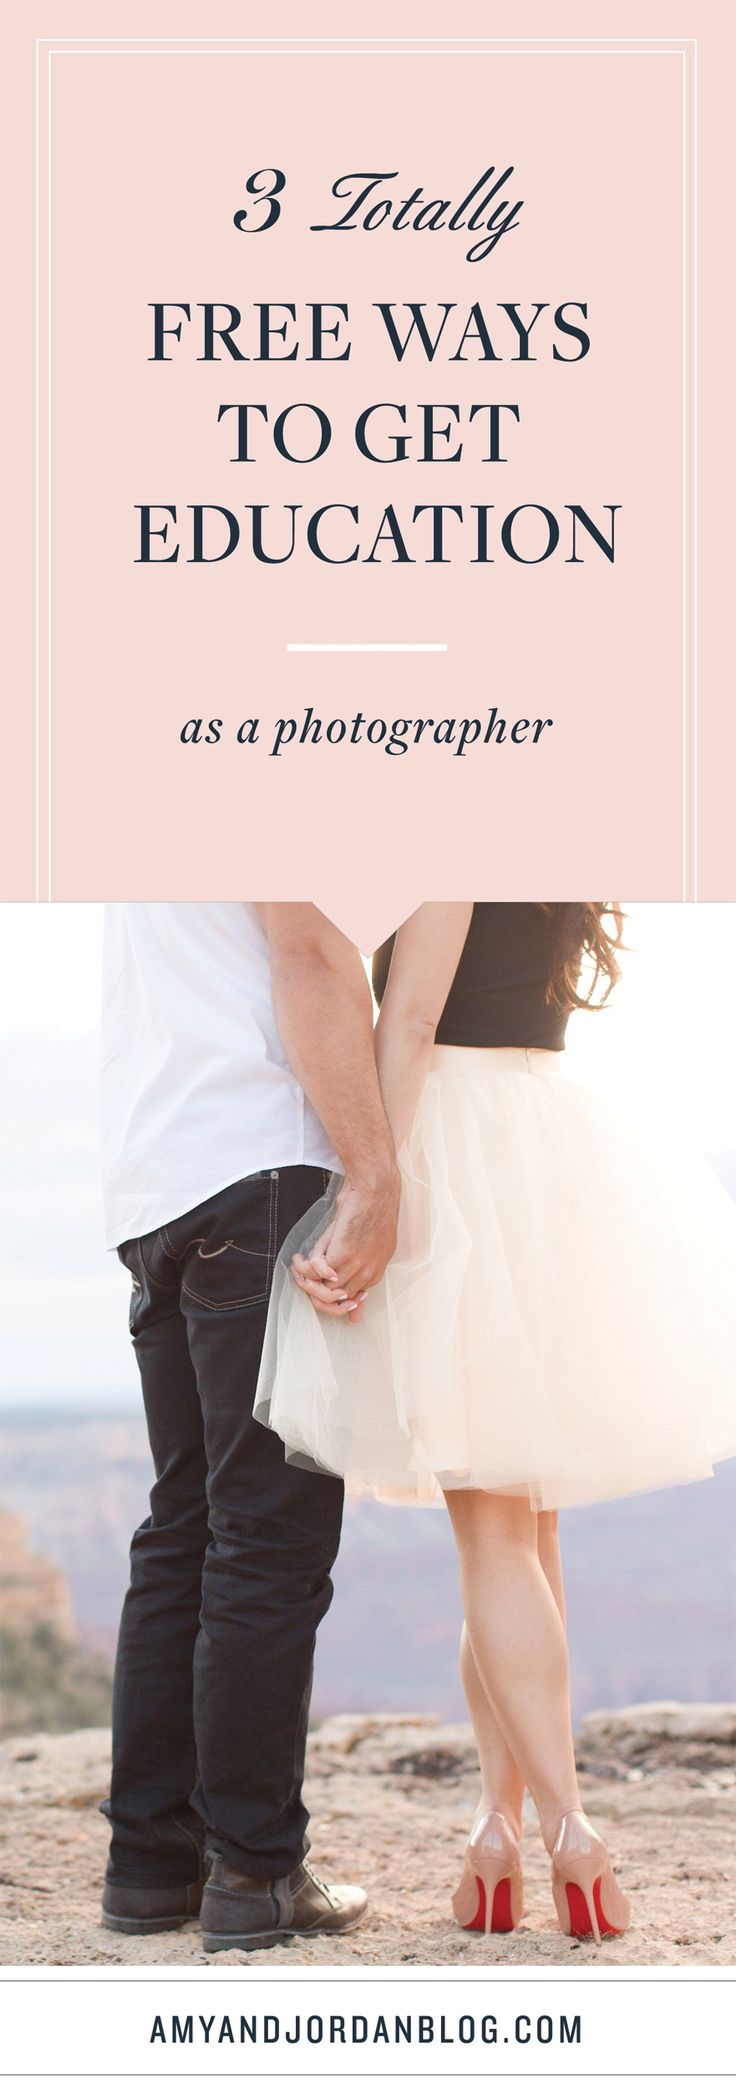 We're sharing 3 totally free ways to get education as a photographer!